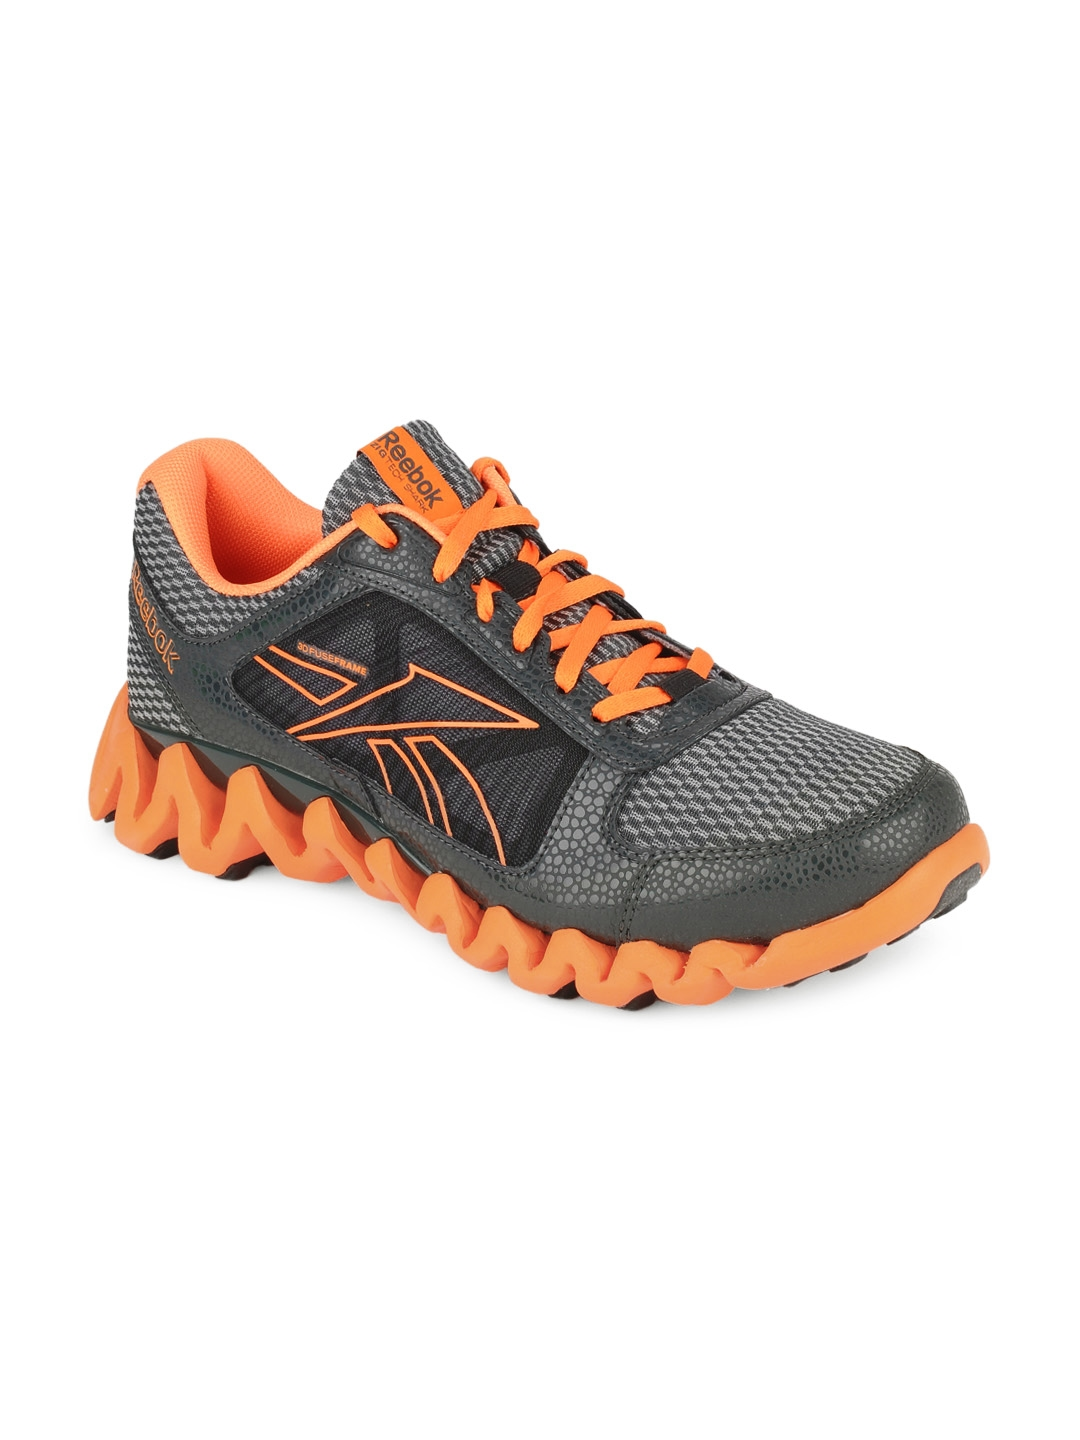 outlet store 3f7c5 a56ed Buy Reebok Men Charcoal Grey Zigtech Shark Pursuit360 Sports Shoes - Sports  Shoes for Men 127096   Myntra